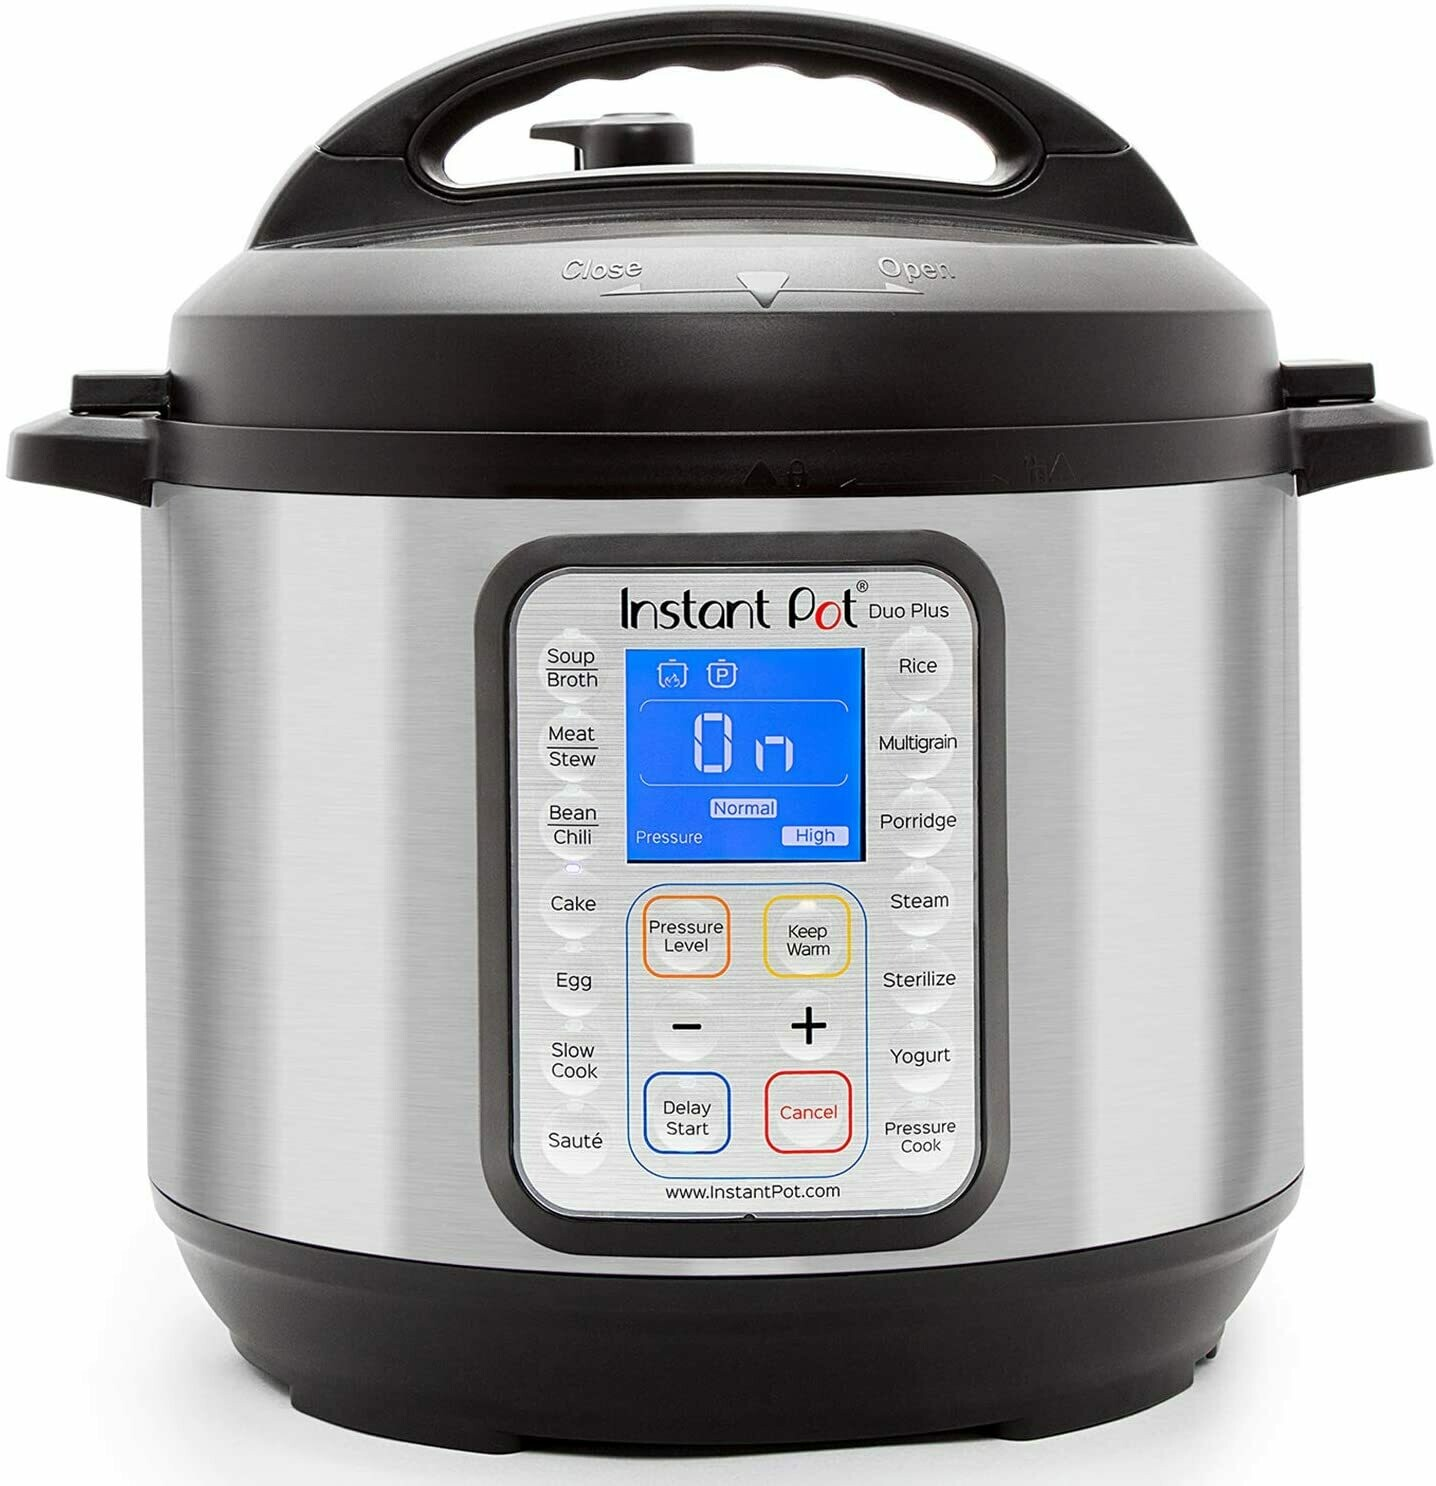 CE-326 OLLA Instant Pot - Duo Plus 6 Quart 9-in-1  Multi-Use Pressure Cooker 15 Program 1000 W Stain Steel